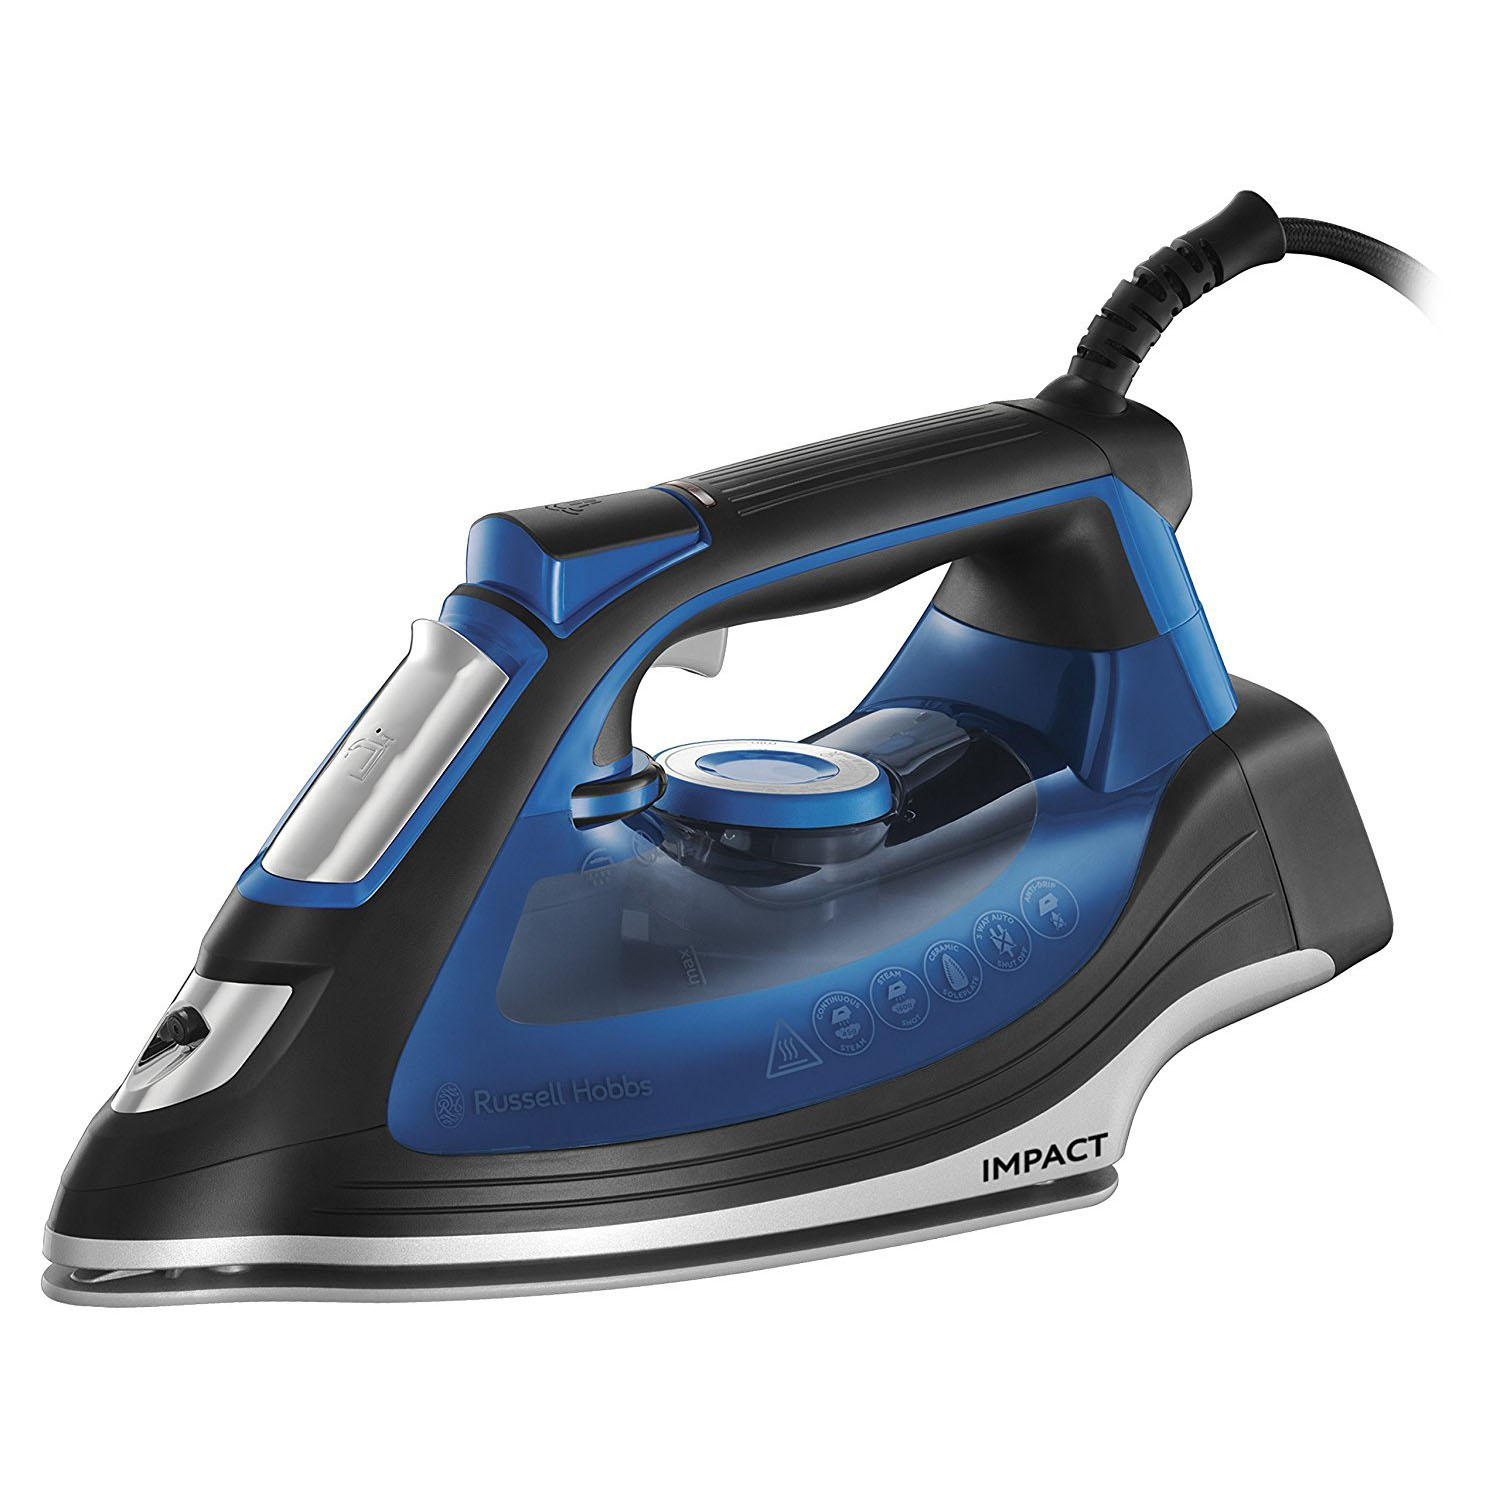 Russell Hobbs 24650 Impact Steam Iron - Blue